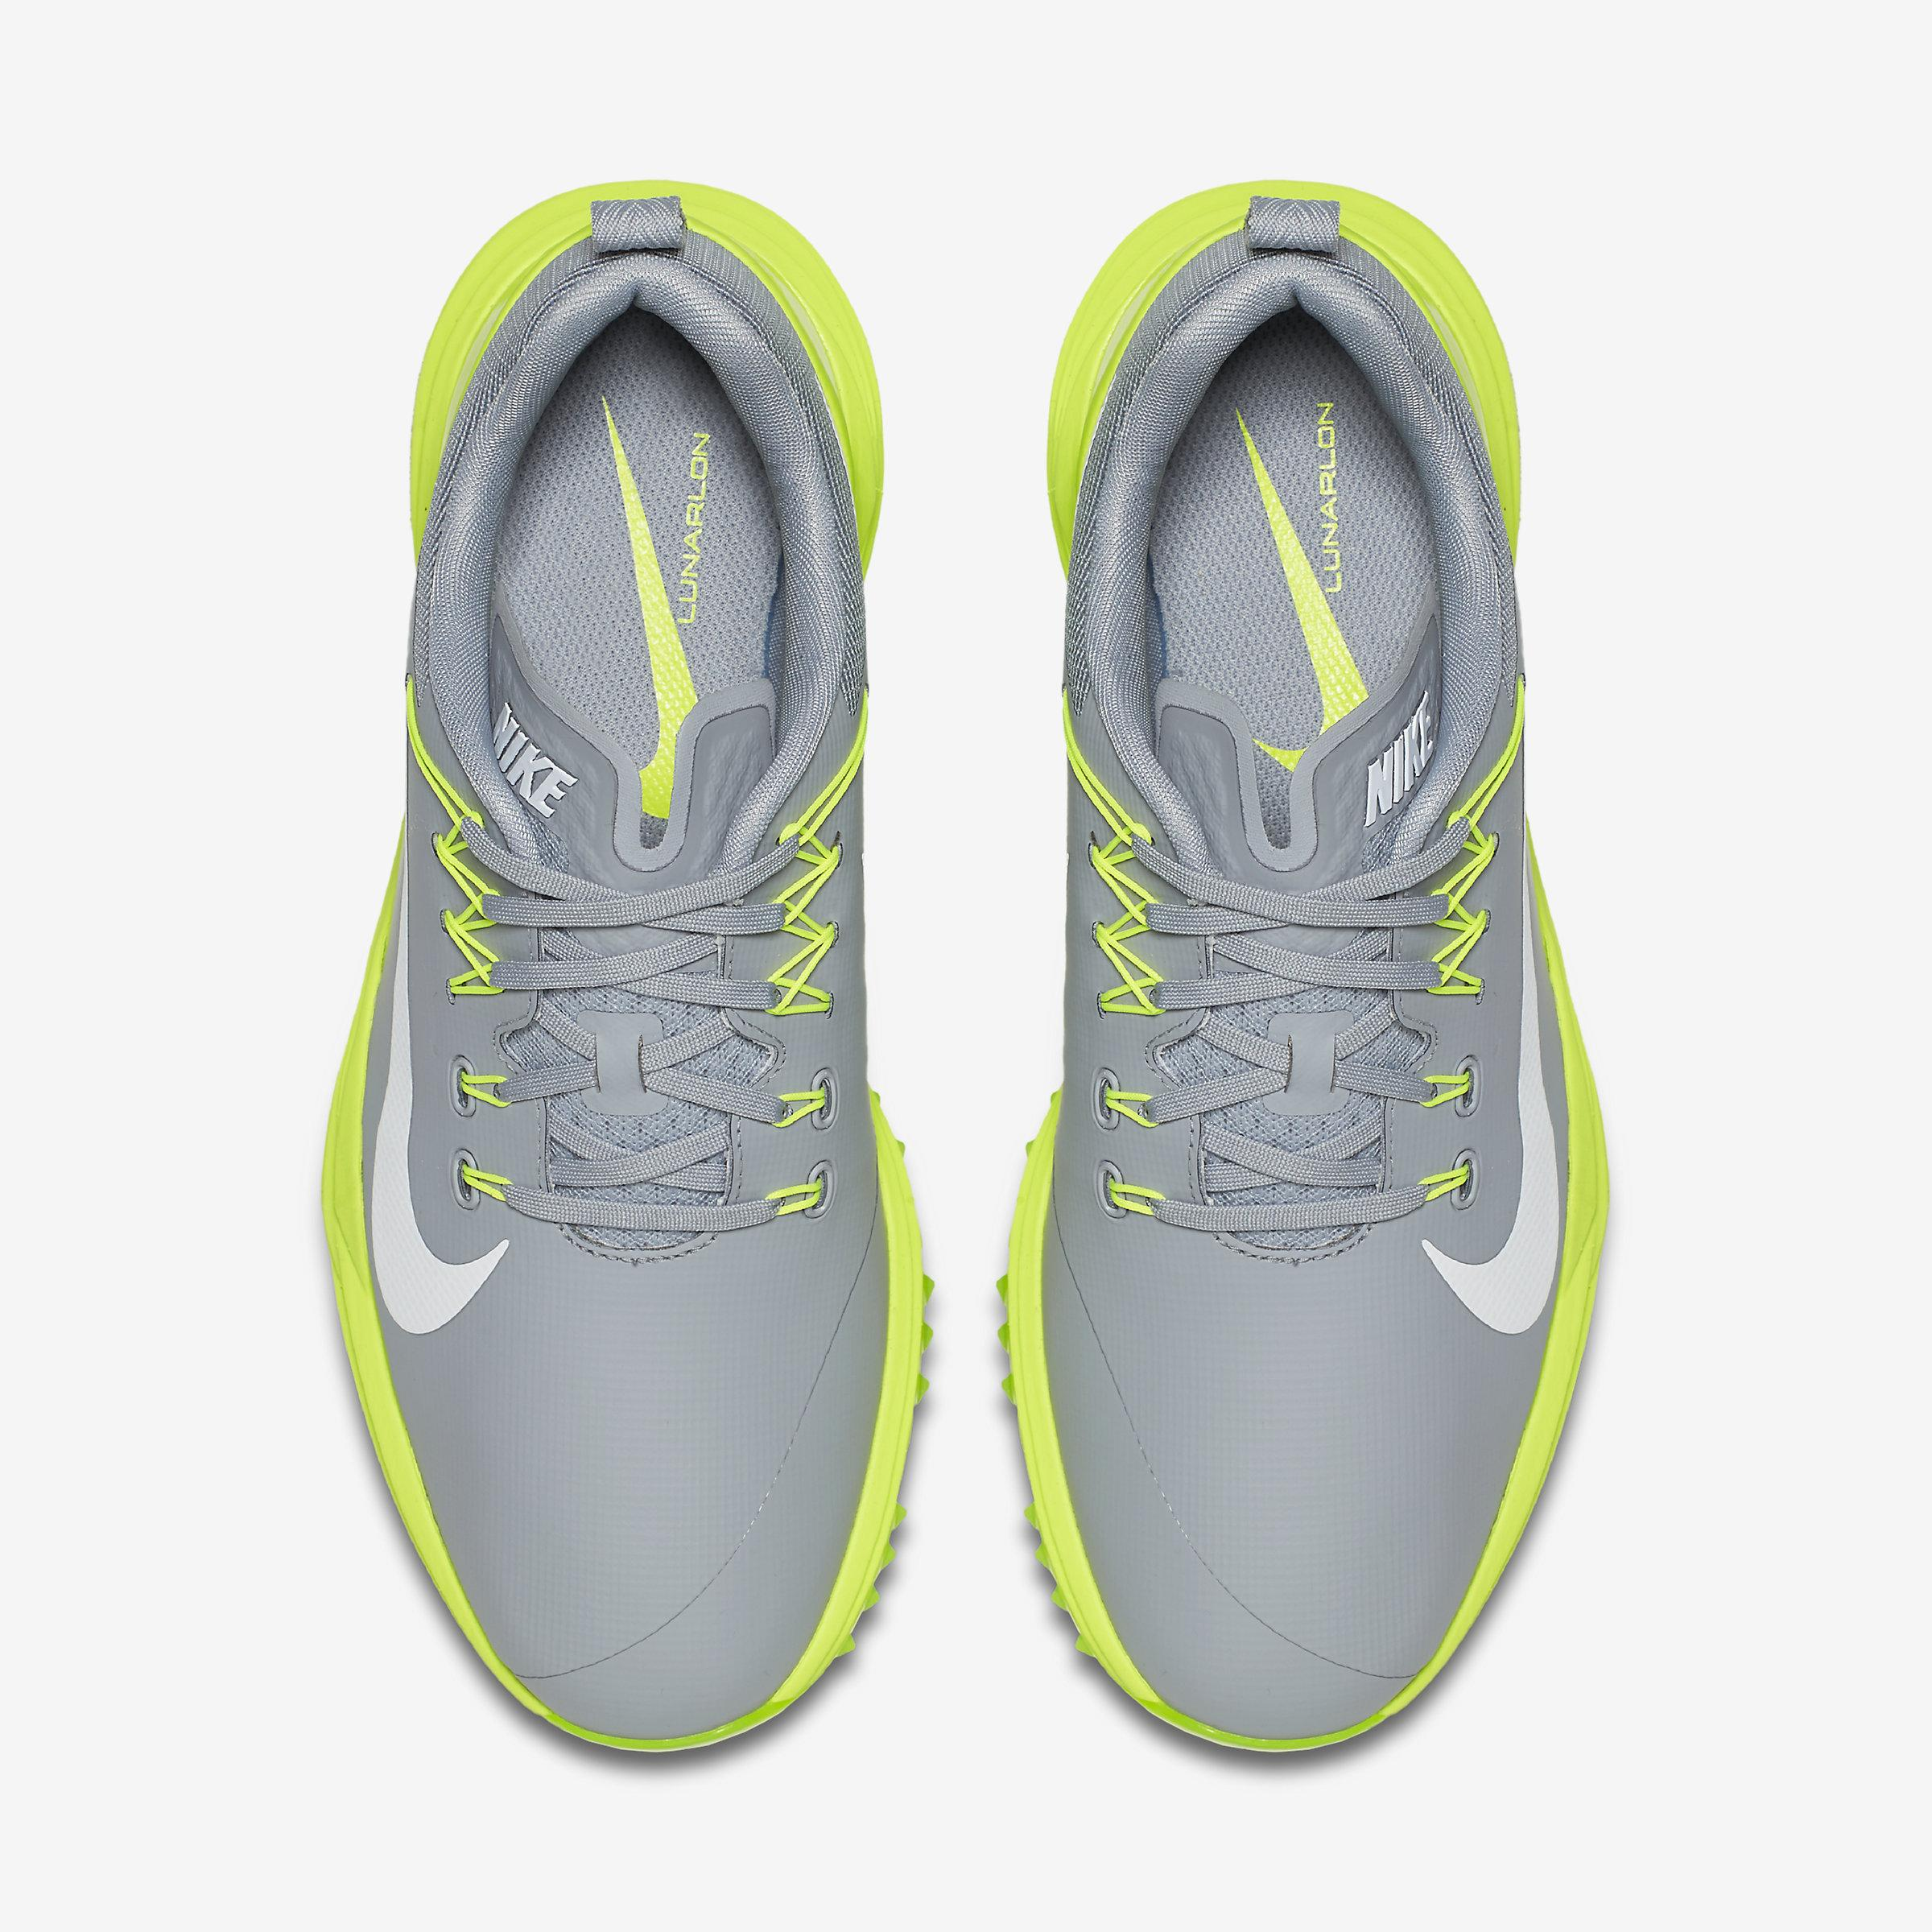 Nike Synthetic Lunar Command 2 for Men